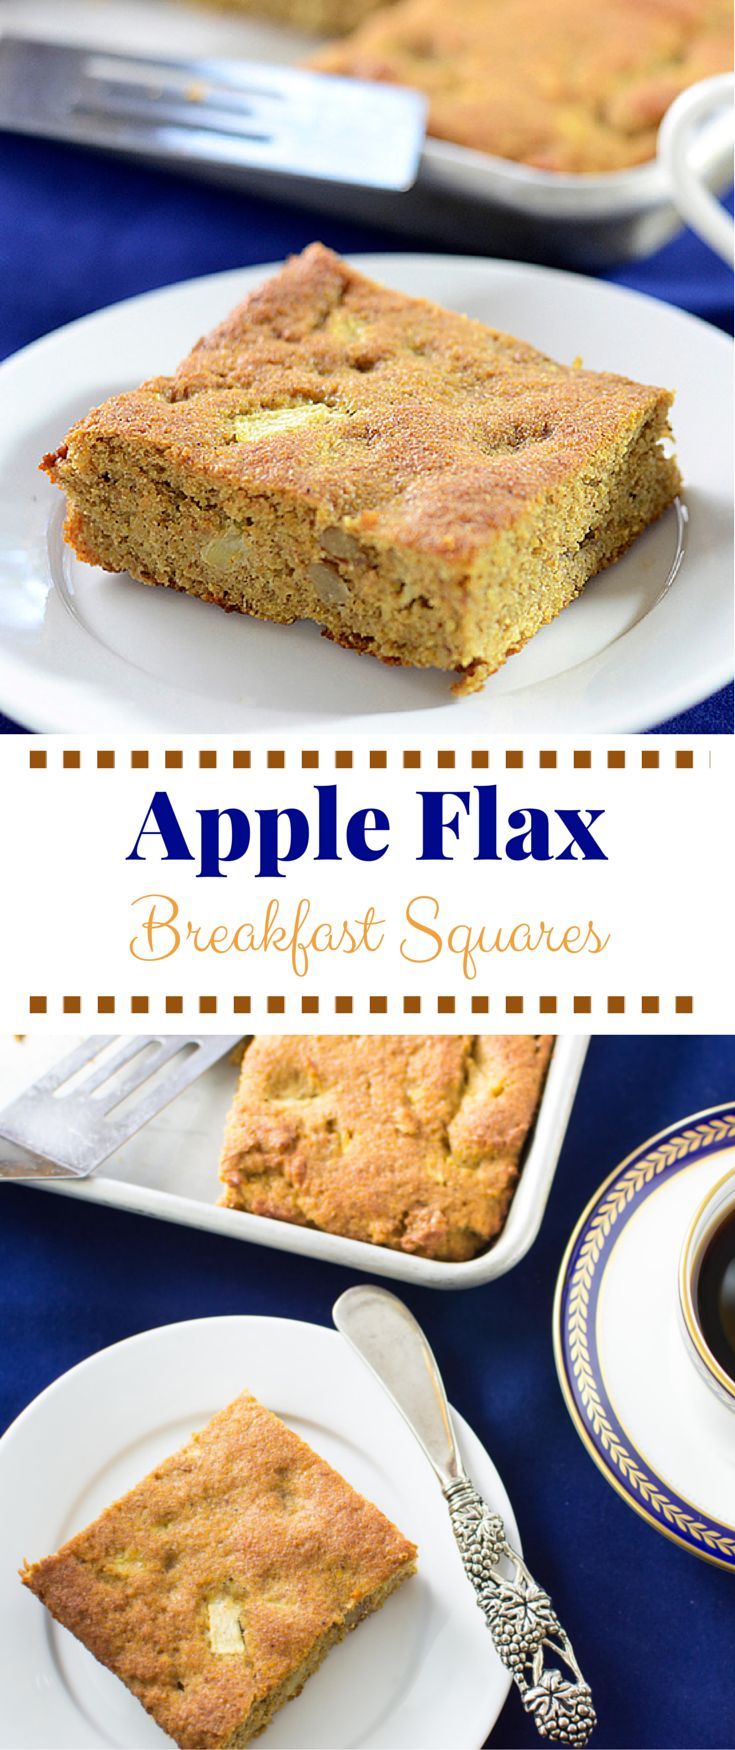 Apple Flax Breakfast Squares have 9g of protein, 9g of fiber and 5,600mg of…